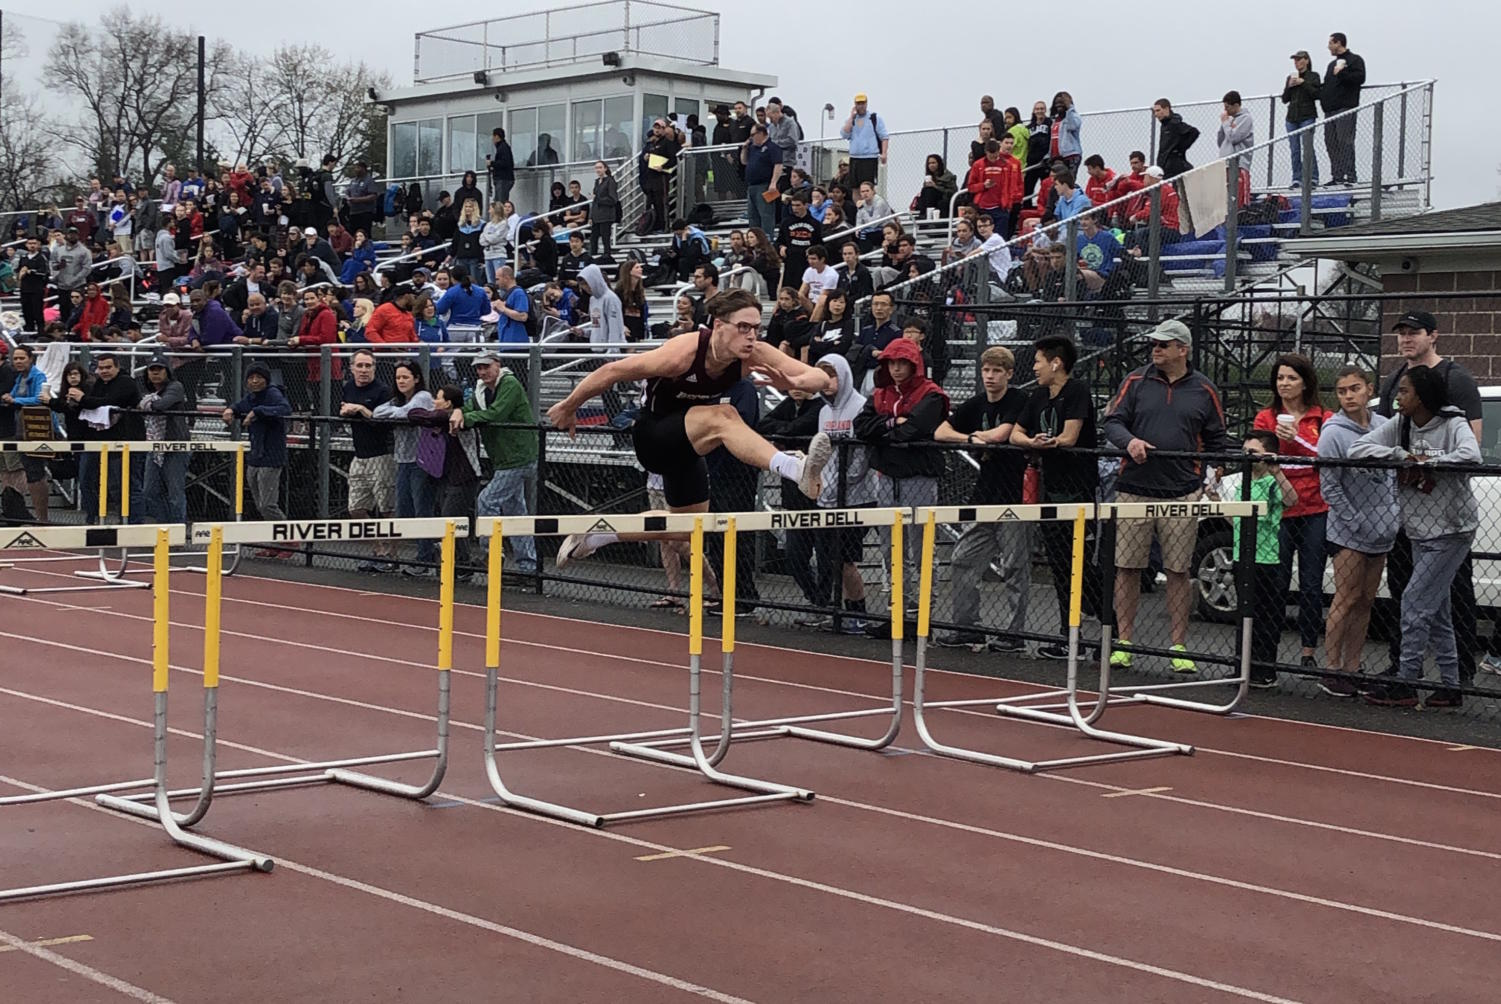 Onlookers watch Stephen Henke hurdle his way to victory at the latest track meet.